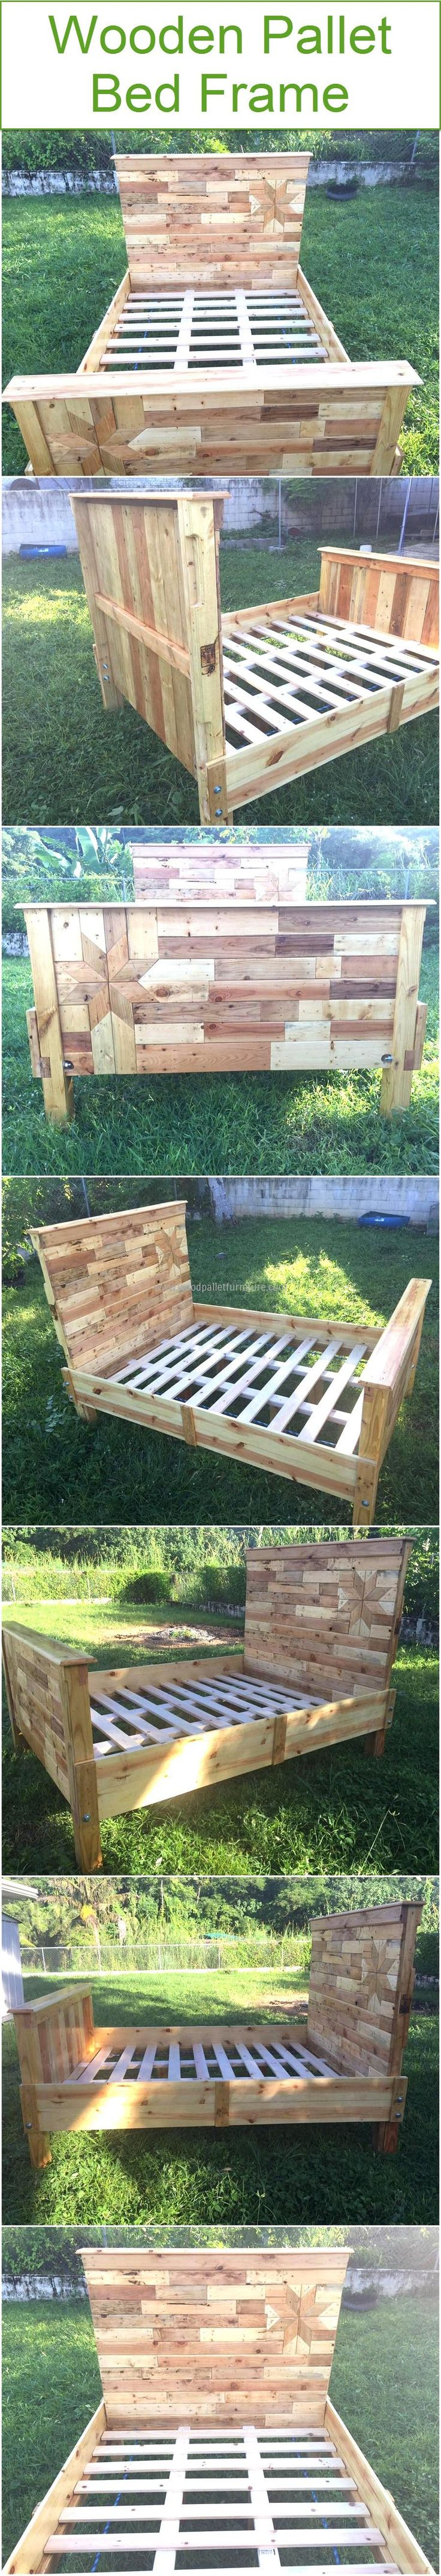 wooden-pallet-bed-frame